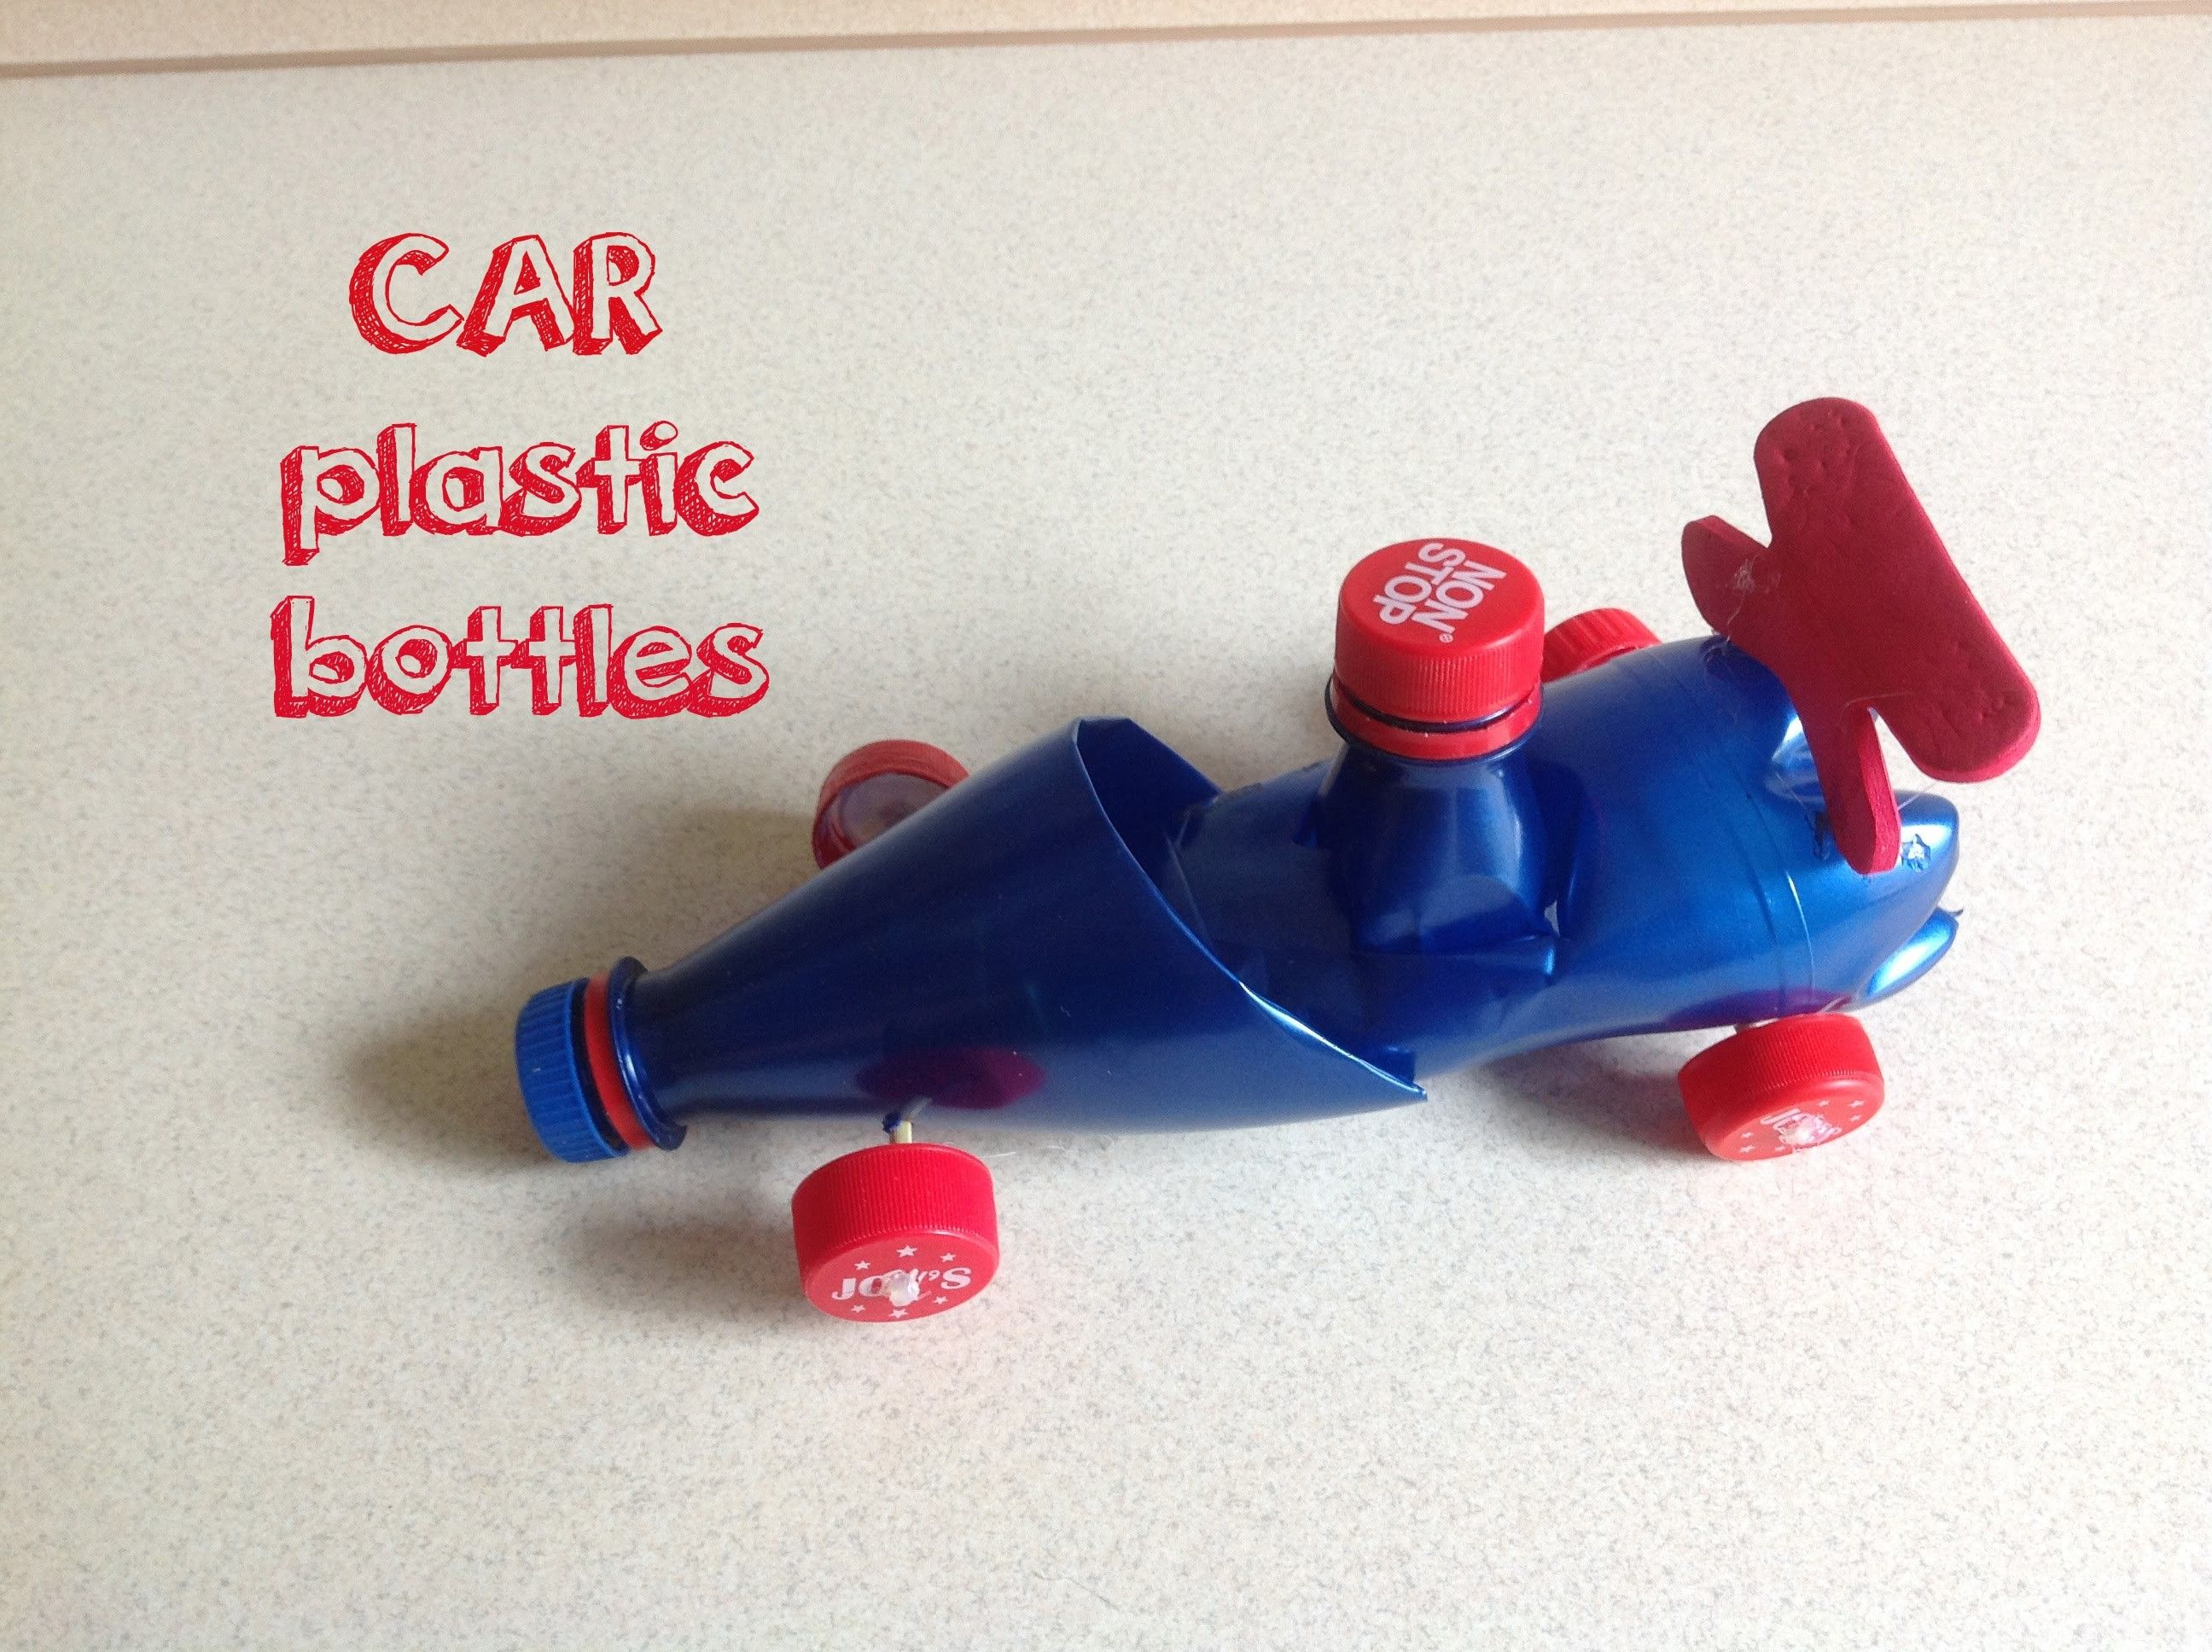 Racing car toy diy plastic bottles creative ideas for Bottle plastic diy